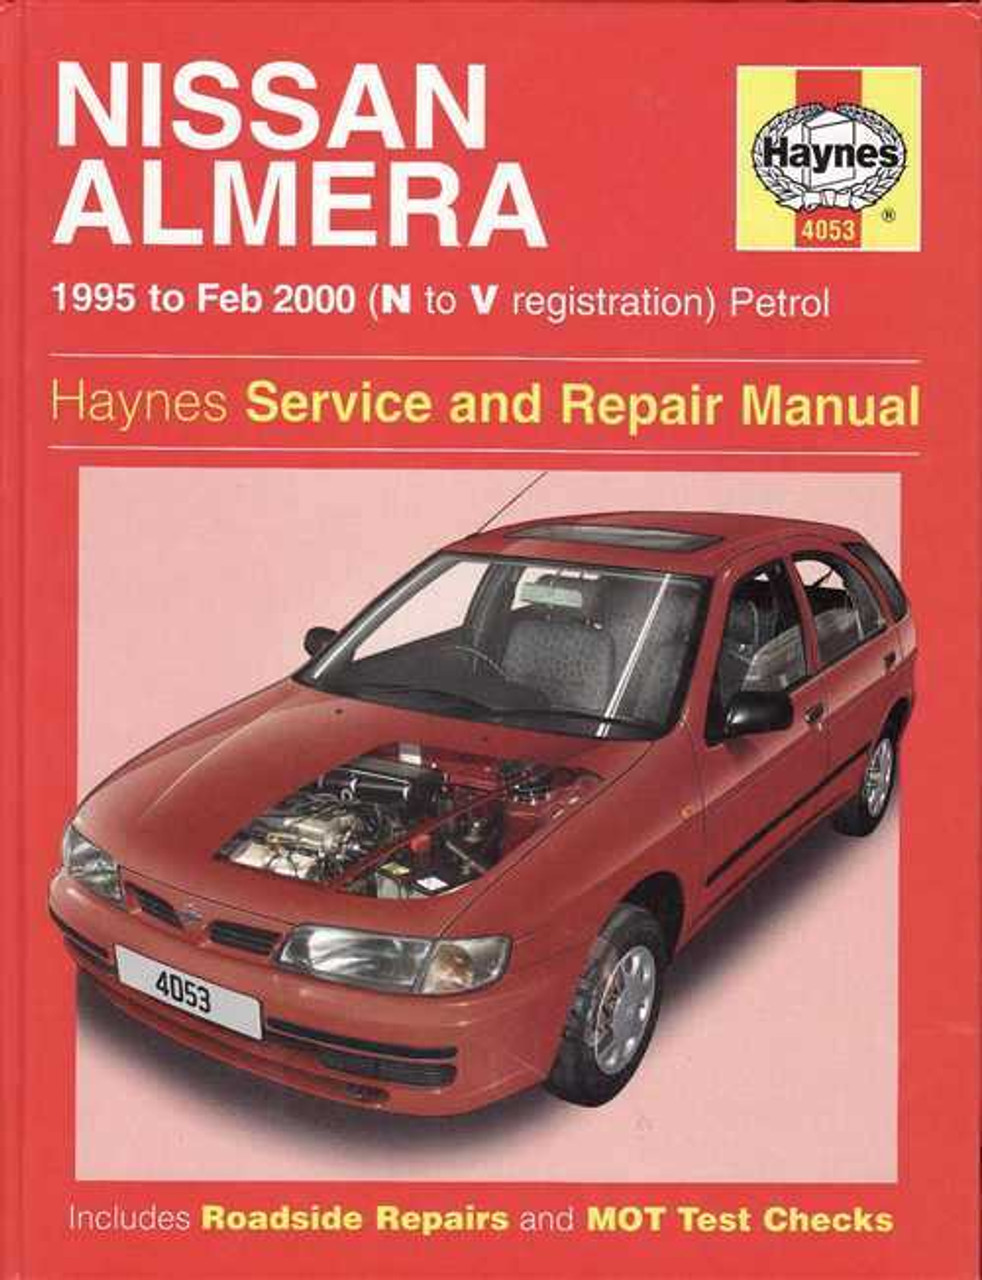 nissan pulsar n15 workshop manual how to and user guide instructions u2022 rh taxibermuda co nissan pulsar n15 owners manual nissan pulsar n15 service manual